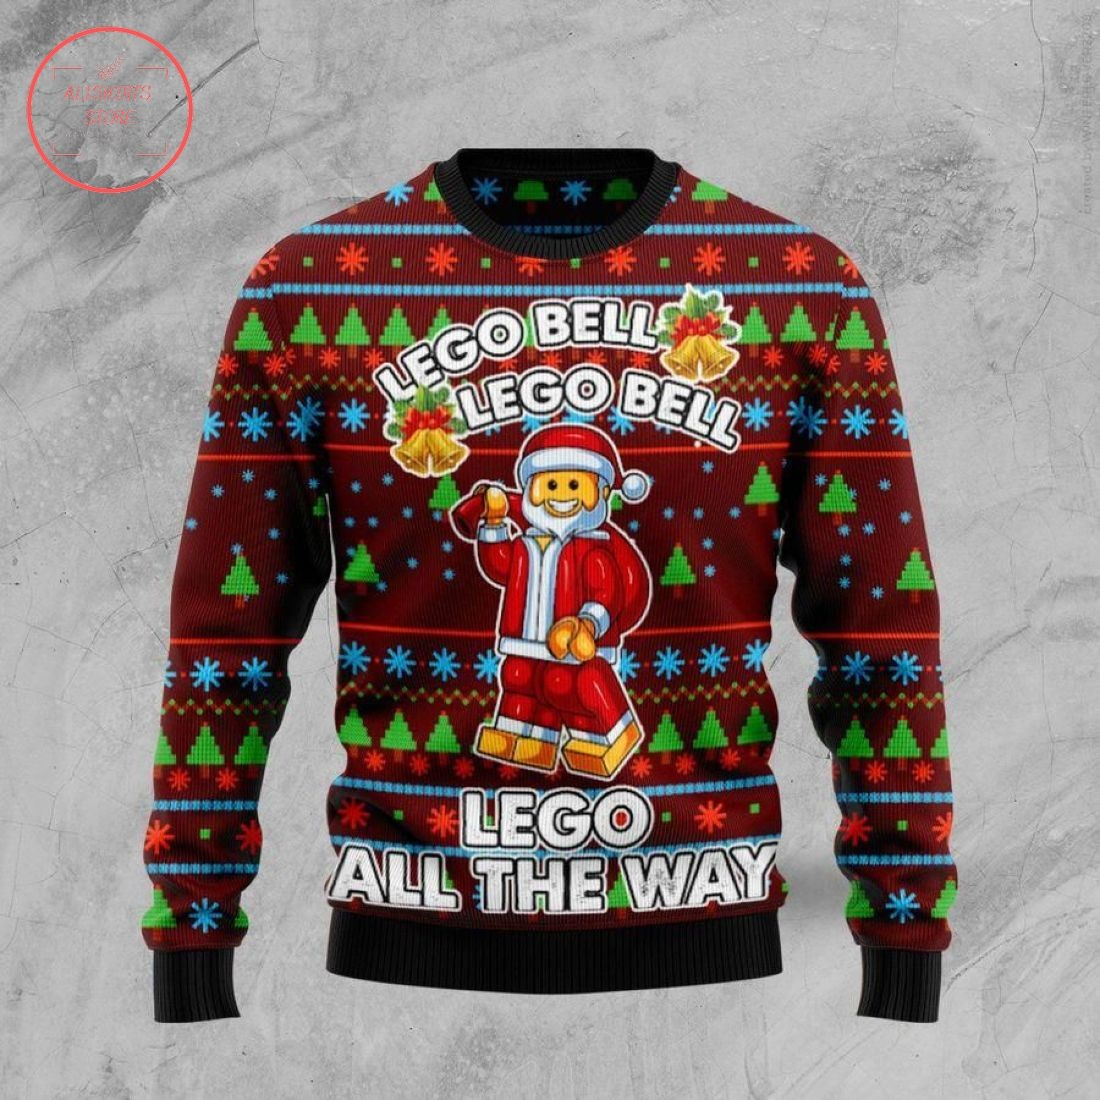 Lego Bell Ugly Christmas Sweater